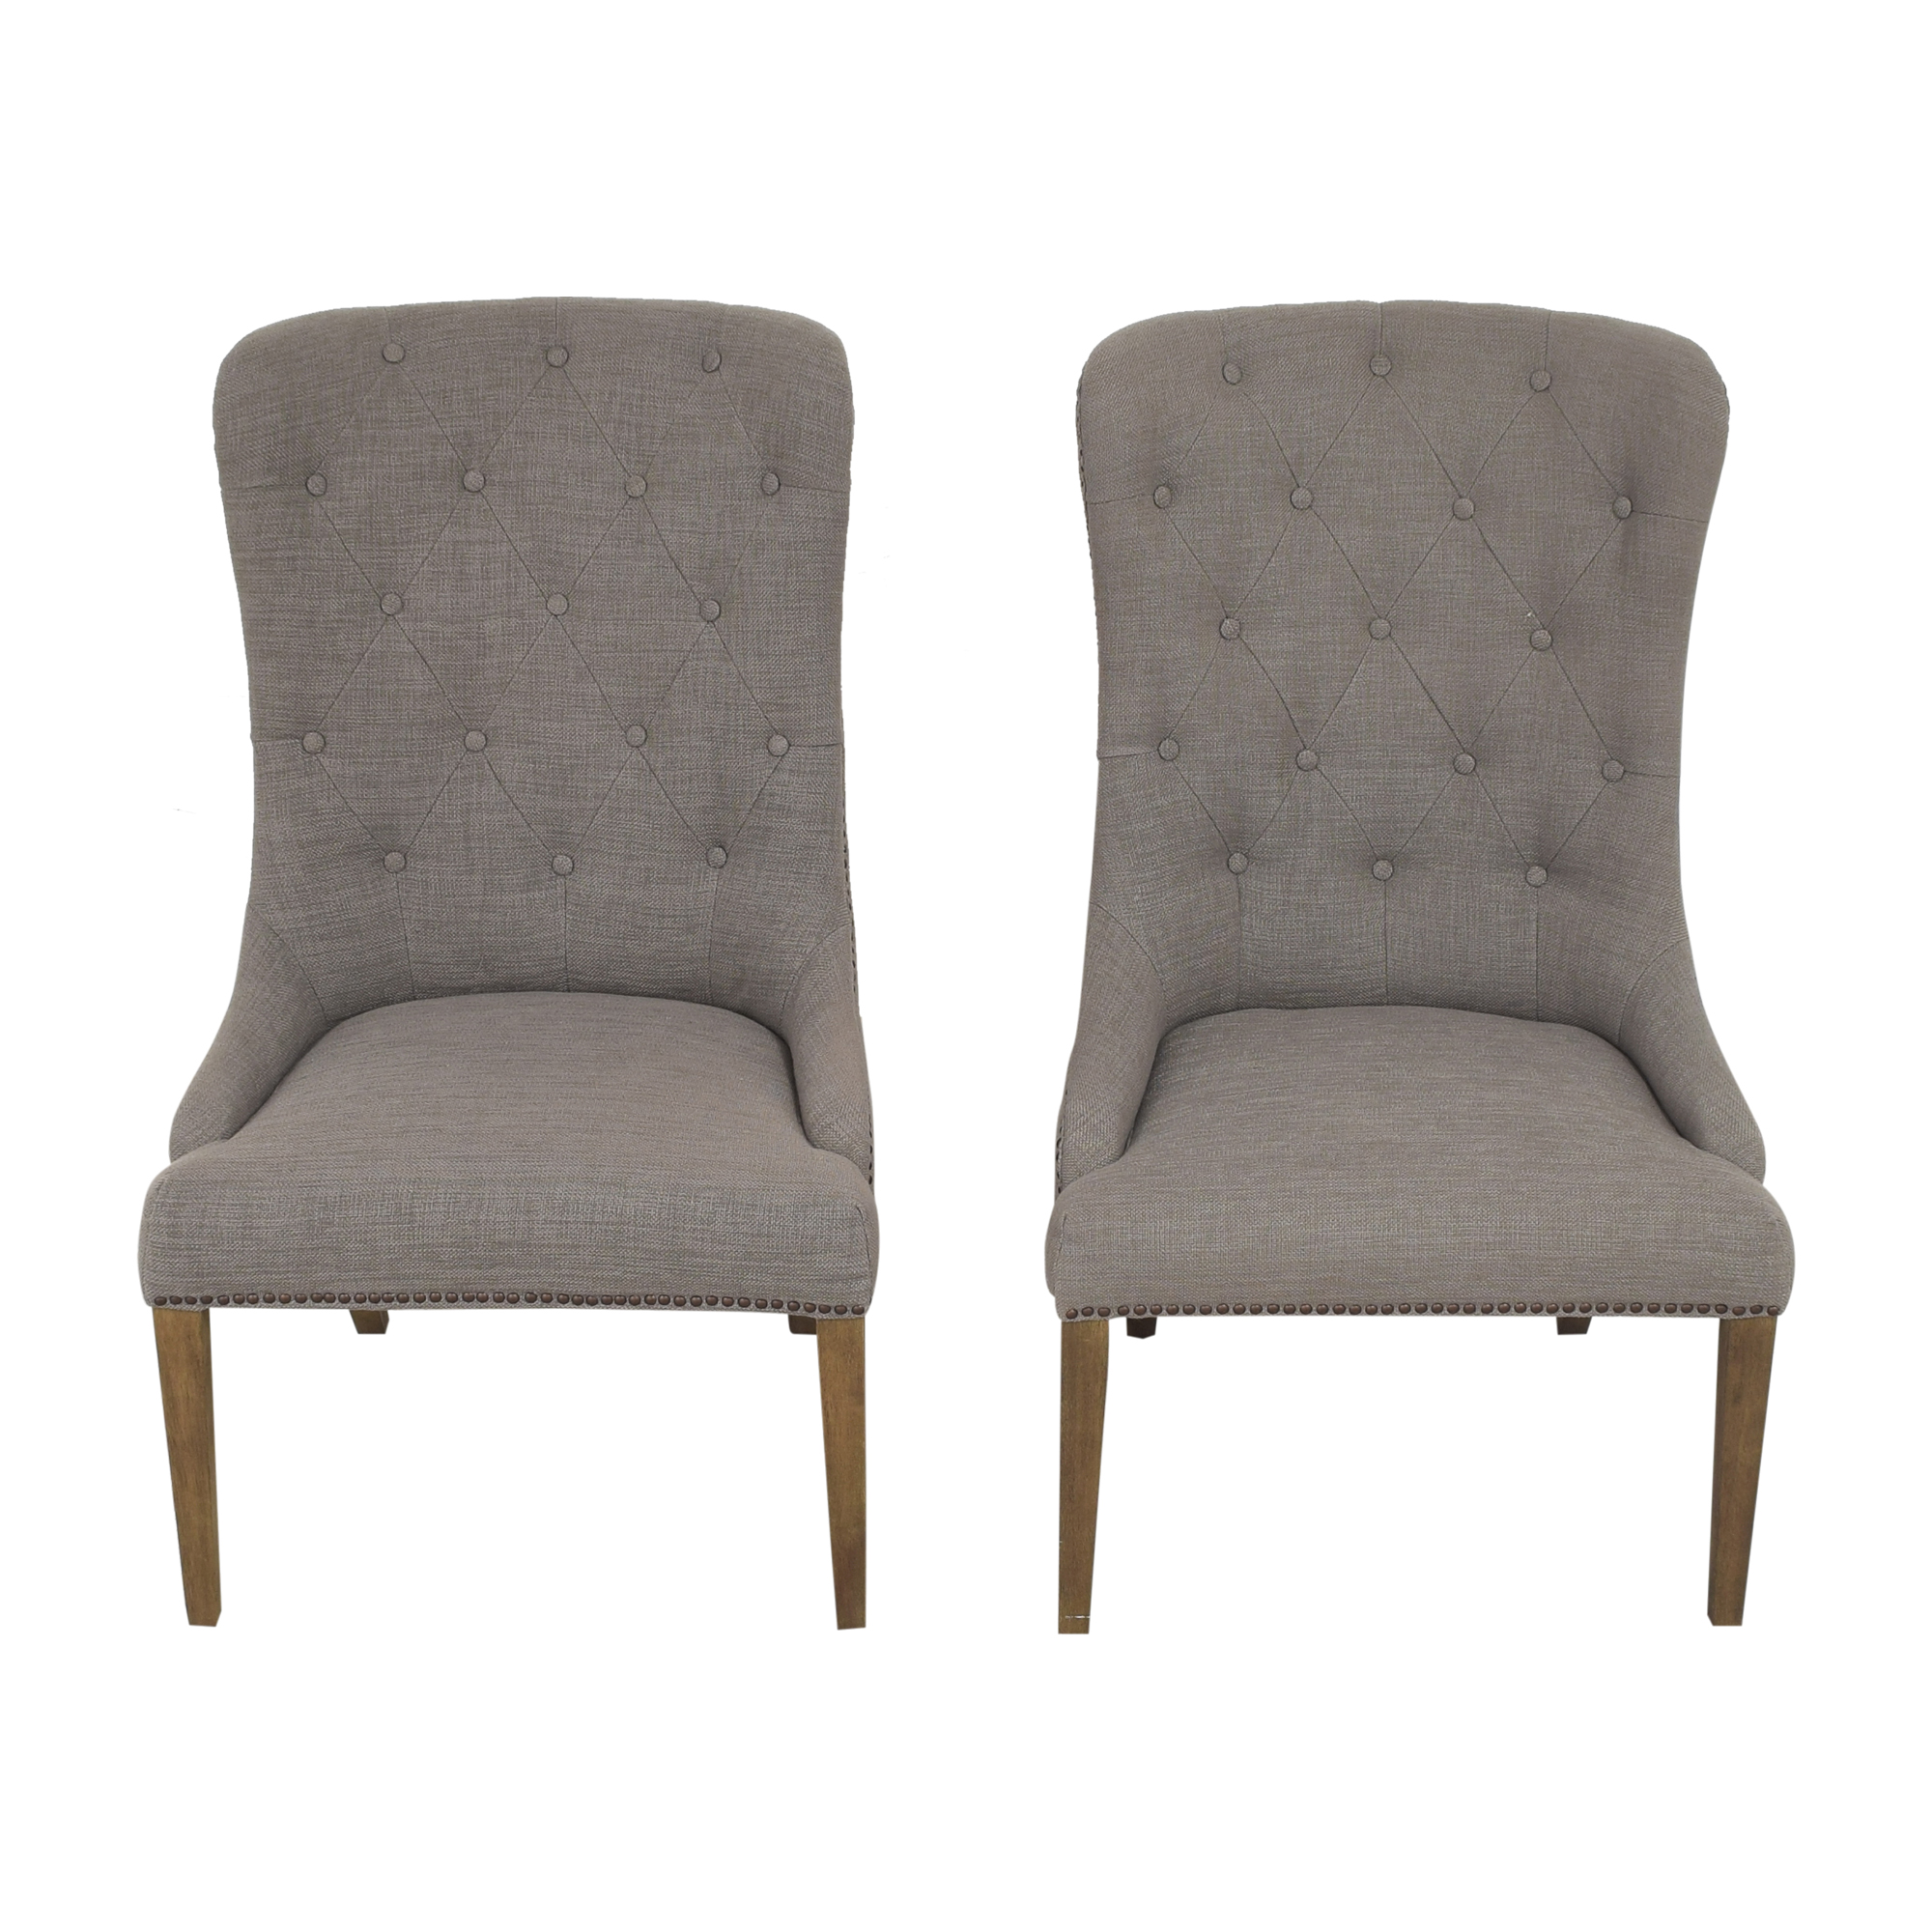 Four Hands Four Hands Elouise Dining Chairs used